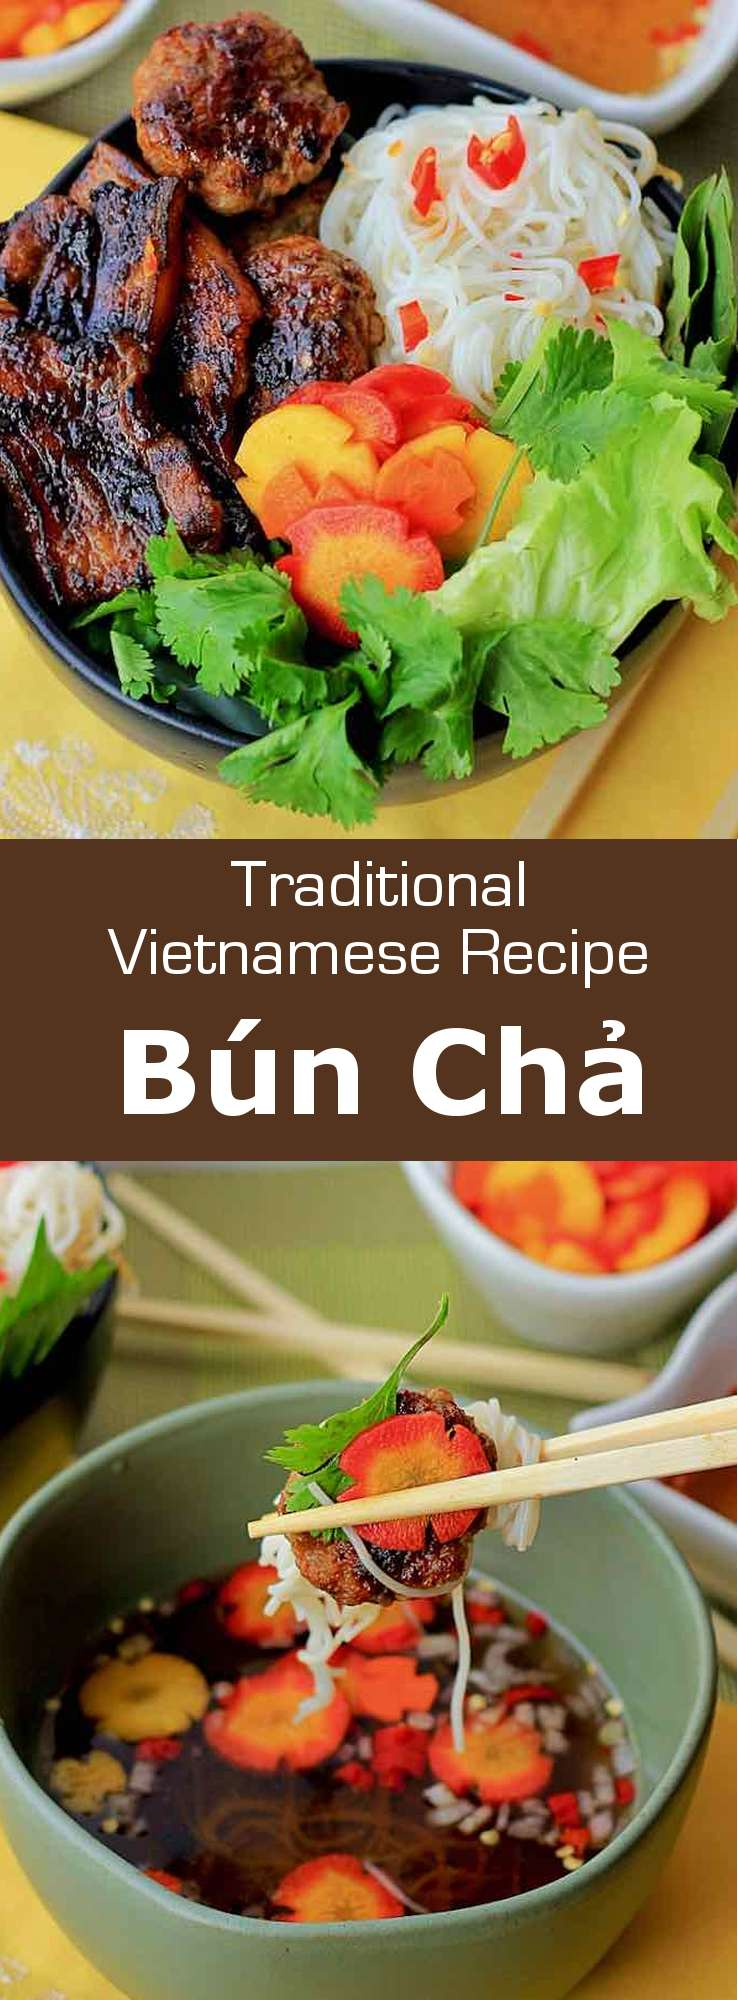 Bún chả is a delicious Vietnamese dish made from grilled pork over rice noodles, and served with a side dish of dipping sauce. #Vietnam #VietnameseCuisine #VietnameseFood #VietnameseRecipe #AsianCuisine #AsianRecipe #AsianFood #WorldCuisine #196flavors